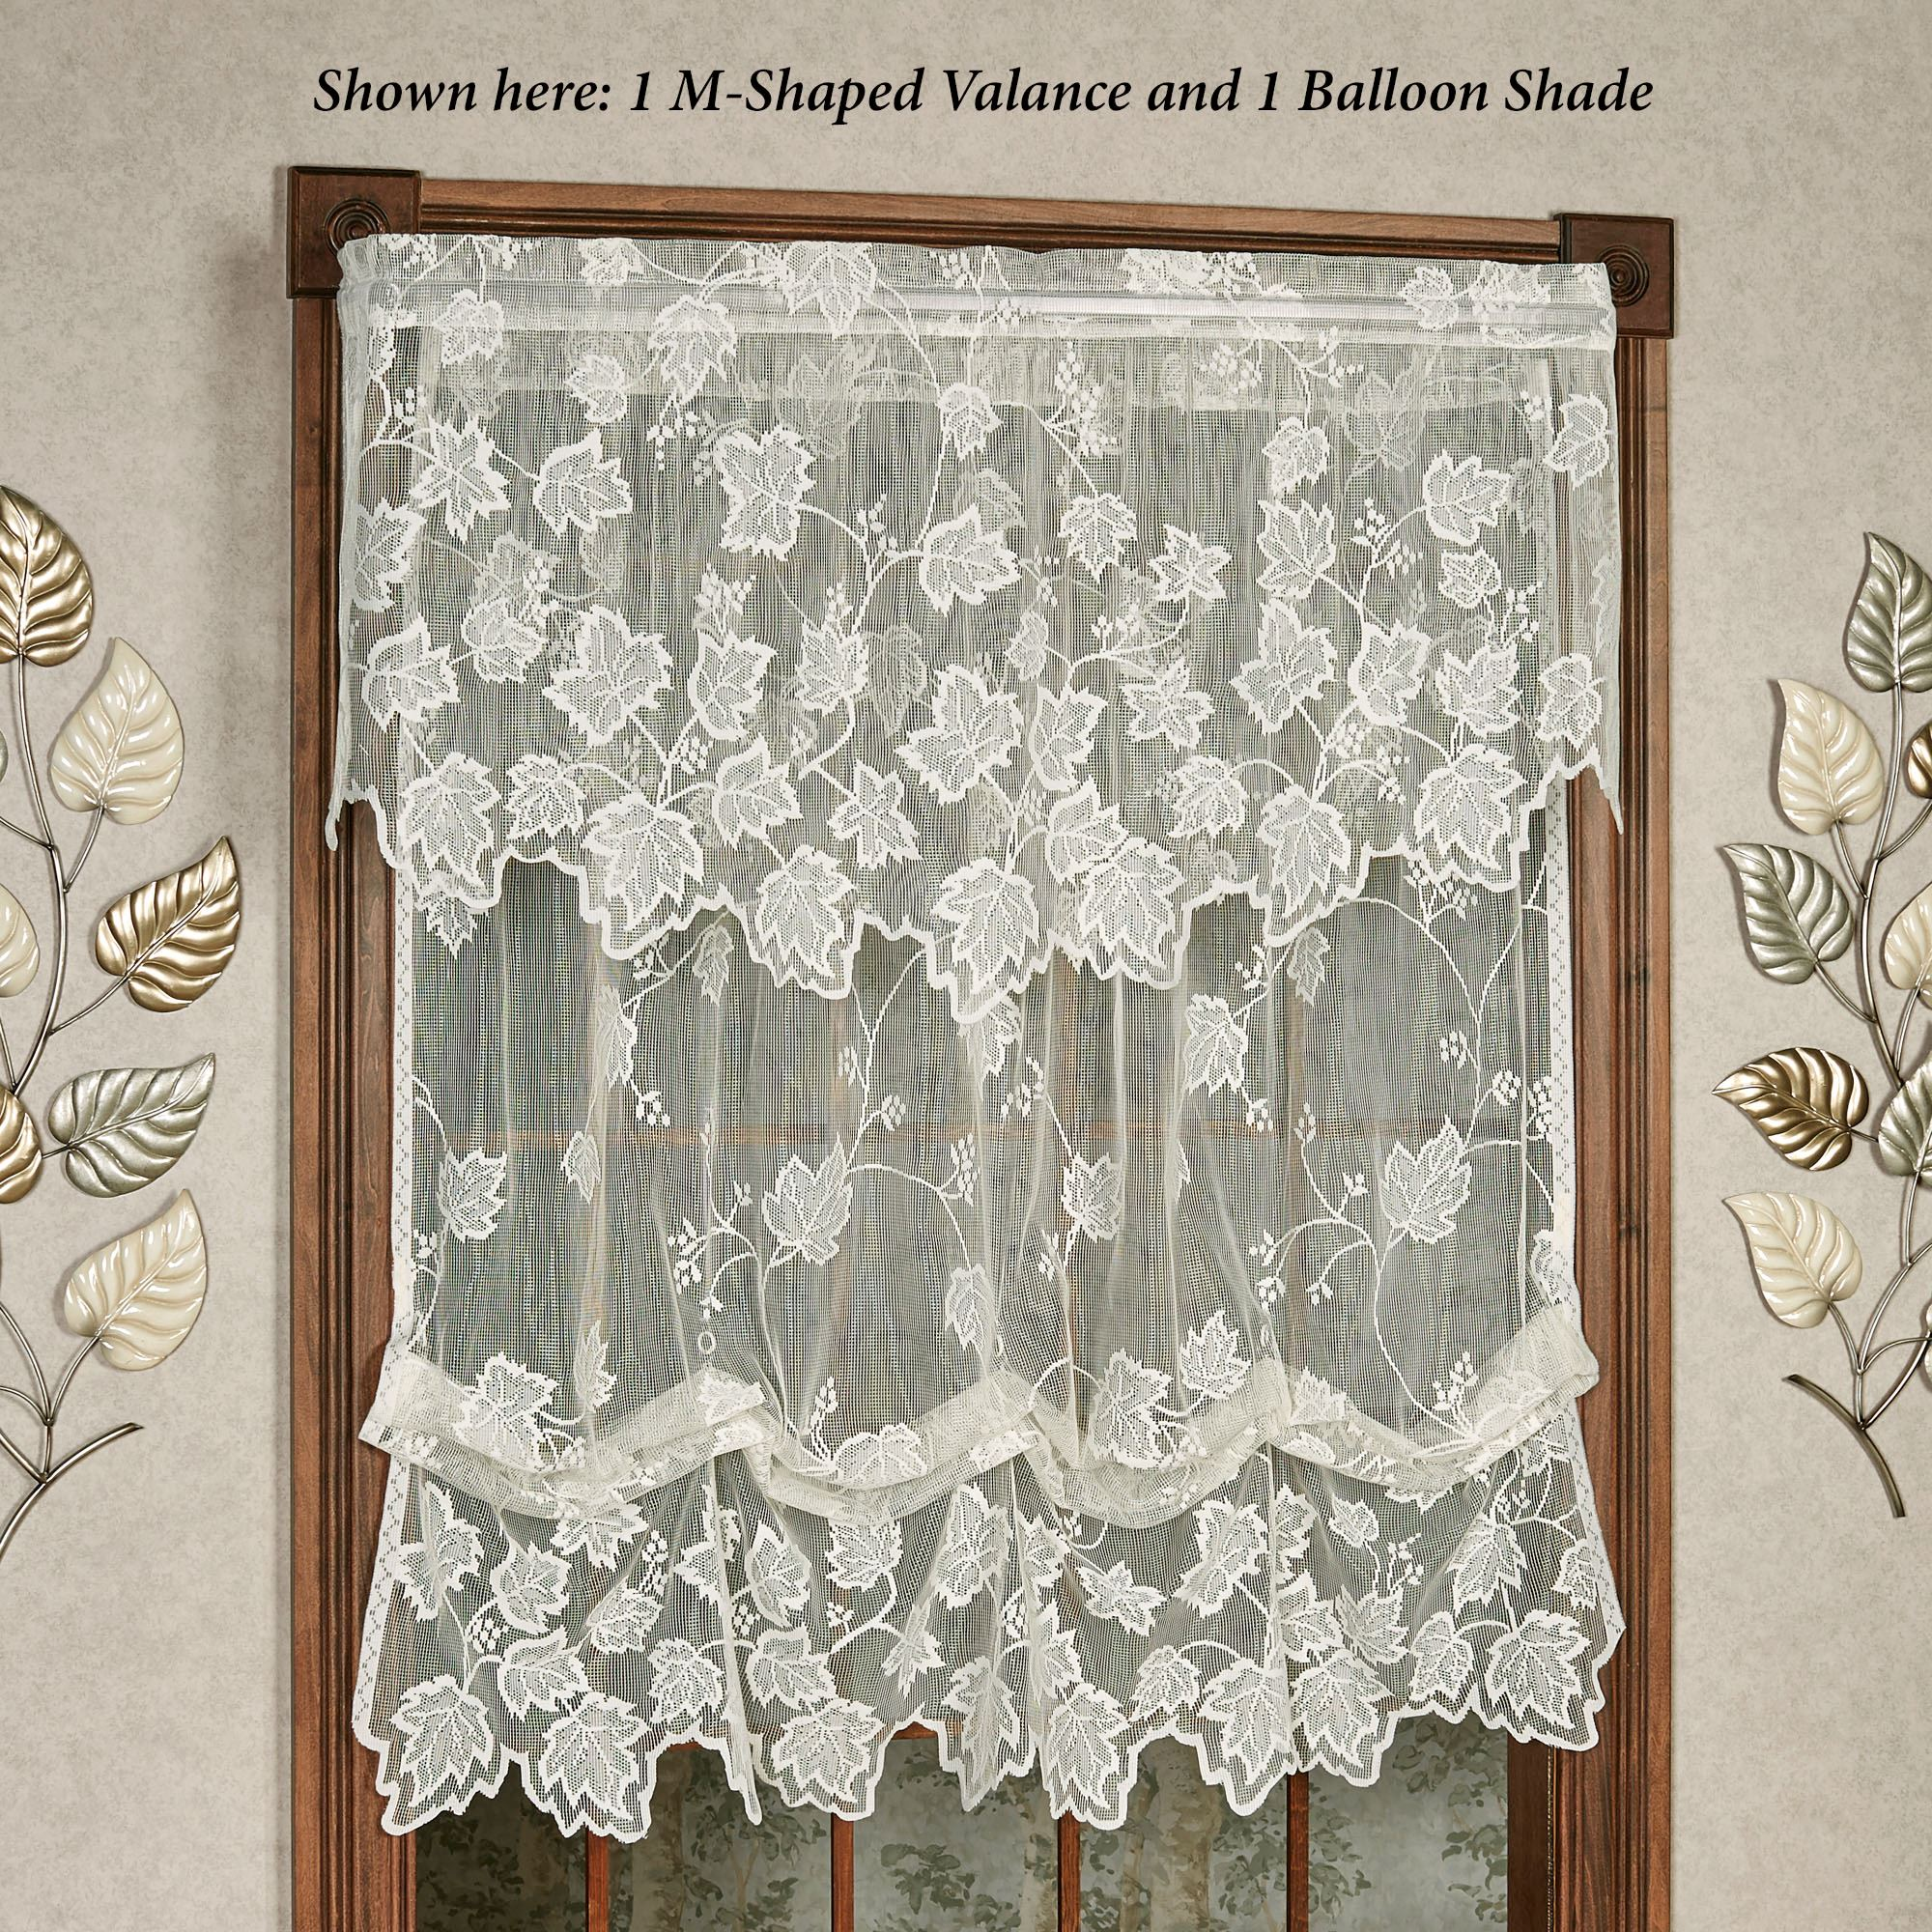 Dancing Leaves Sheer Lace Balloon Shade Window Treatment